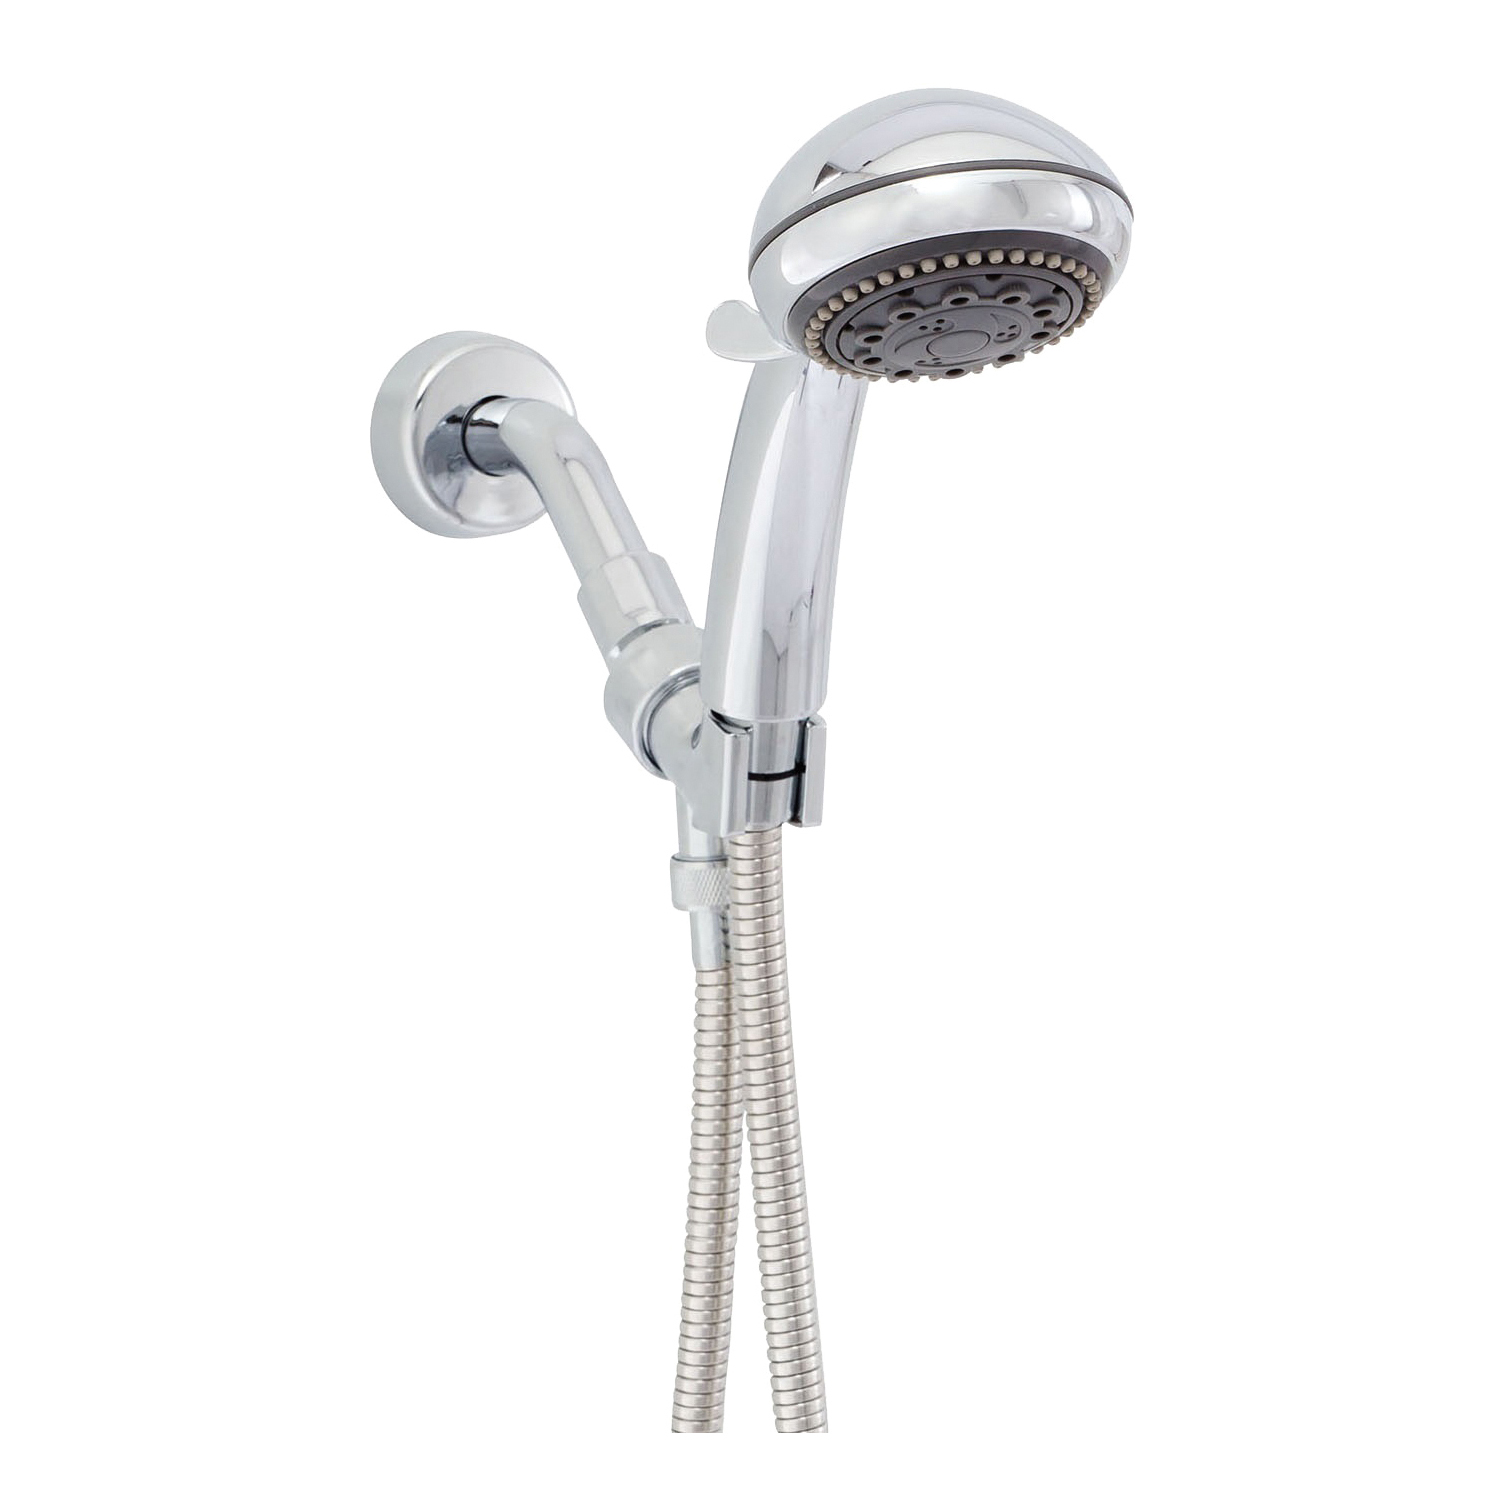 Picture of Whedon Champagne Massage AFP6C Hand Shower, 2.5 gpm, 7-Spray Function, Chrome, 80 in L Hose